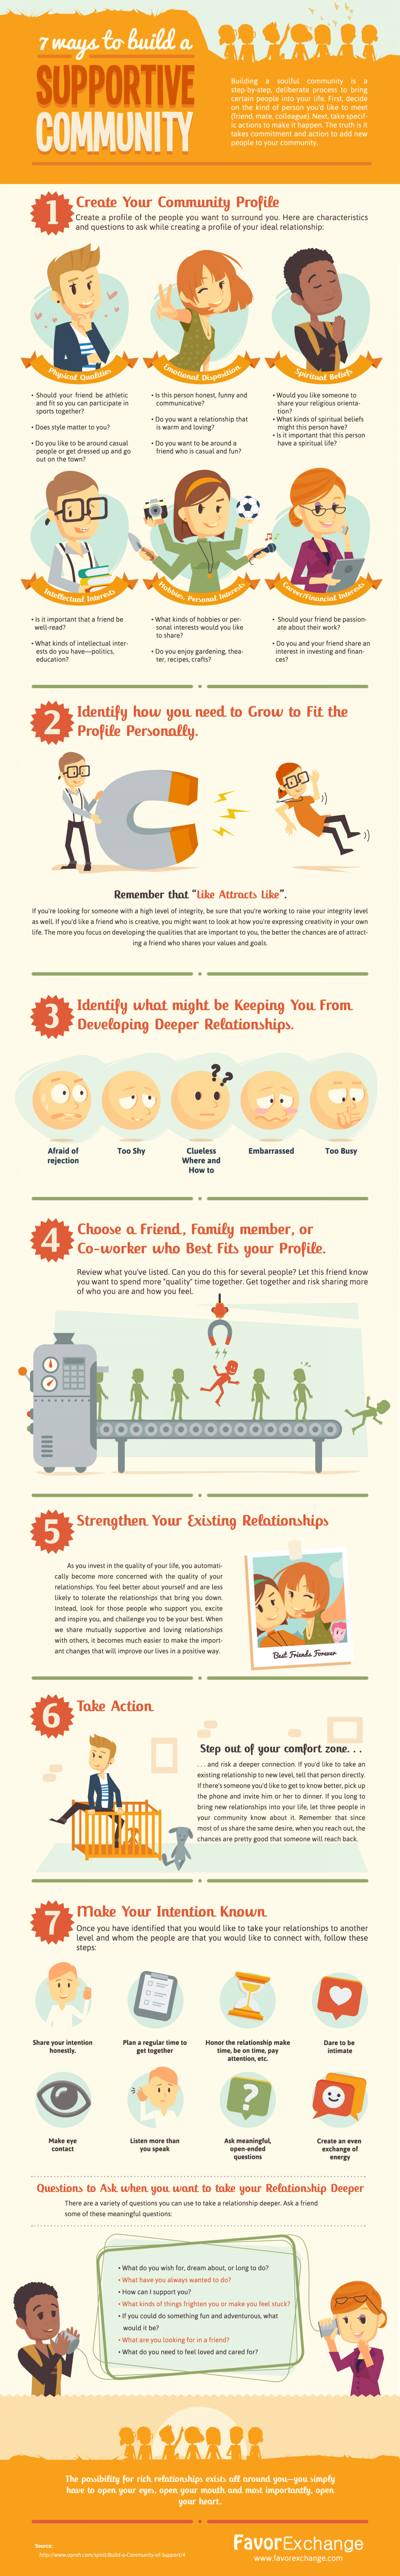 7 Ways to Build a Supportive Community Infographic